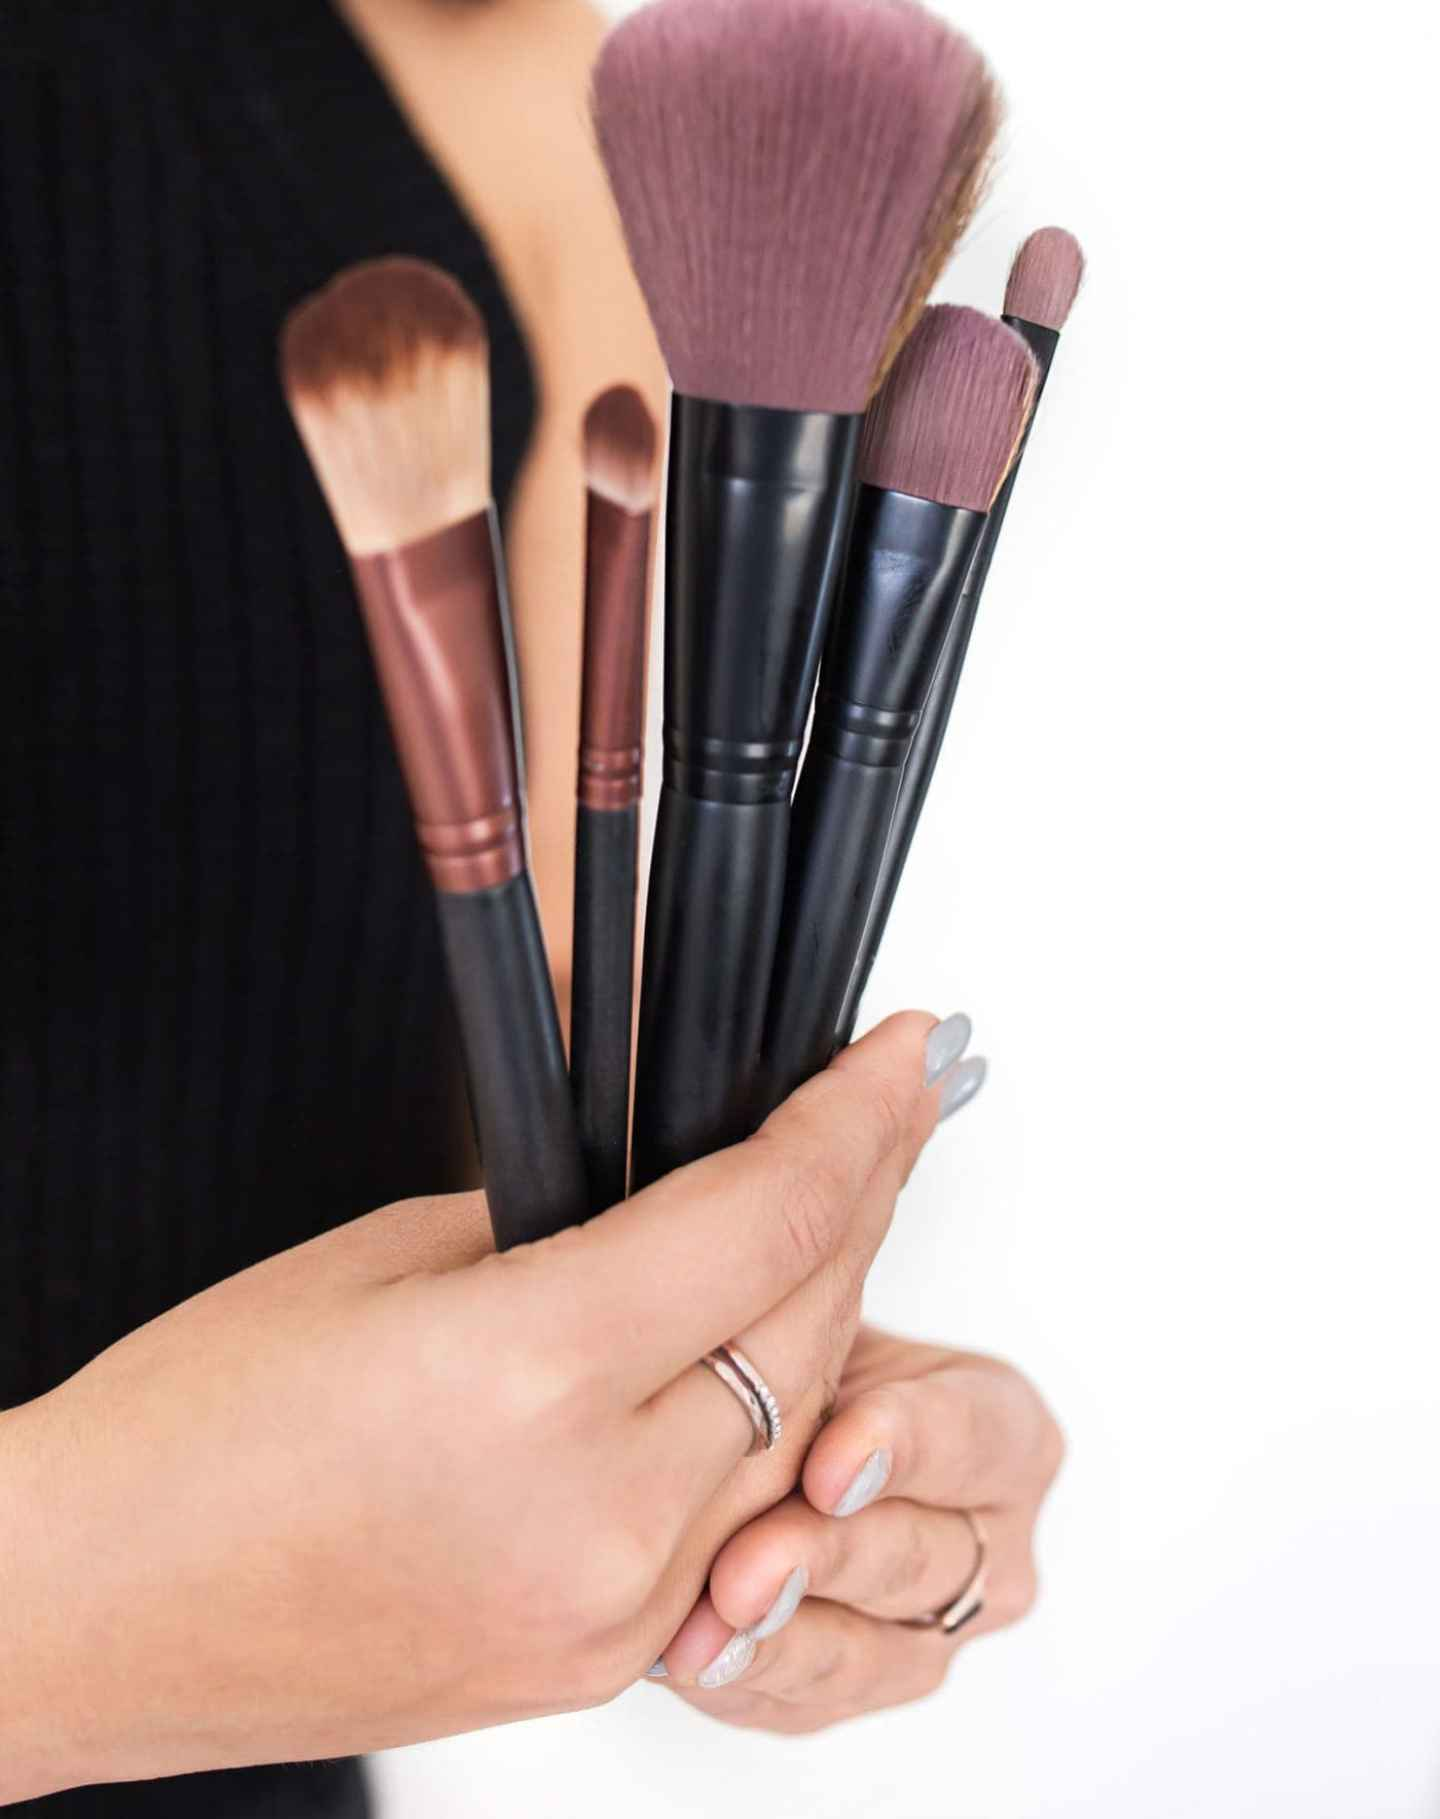 Makeup in Humidity; How to apply humidity proof makeup in the summer